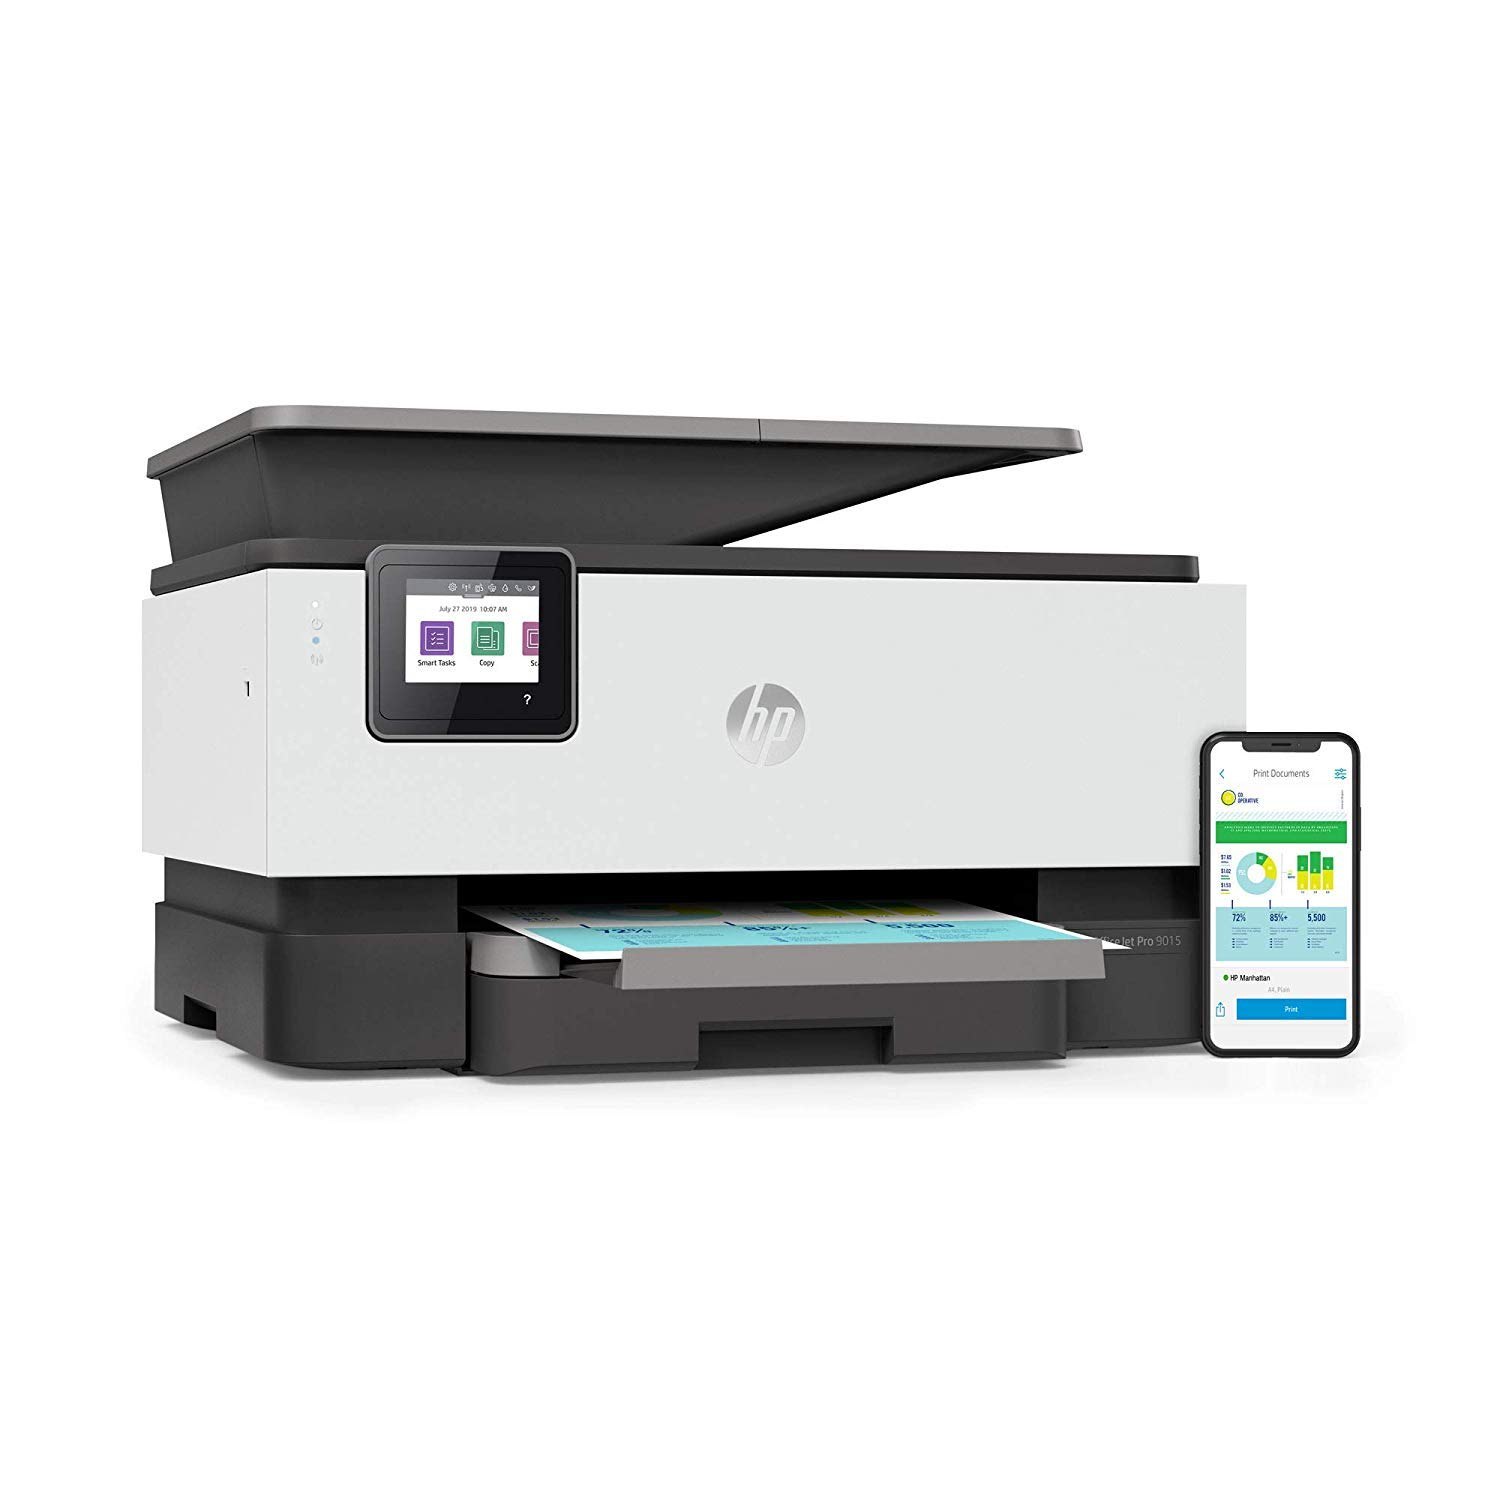 HP OfficeJet Pro 9015 All-in-One Wireless Printer, with Smart Tasks for Smart Office Productivity & Never Run Out of Ink with HP Instant Ink (1KR42A) by HP (Image #14)